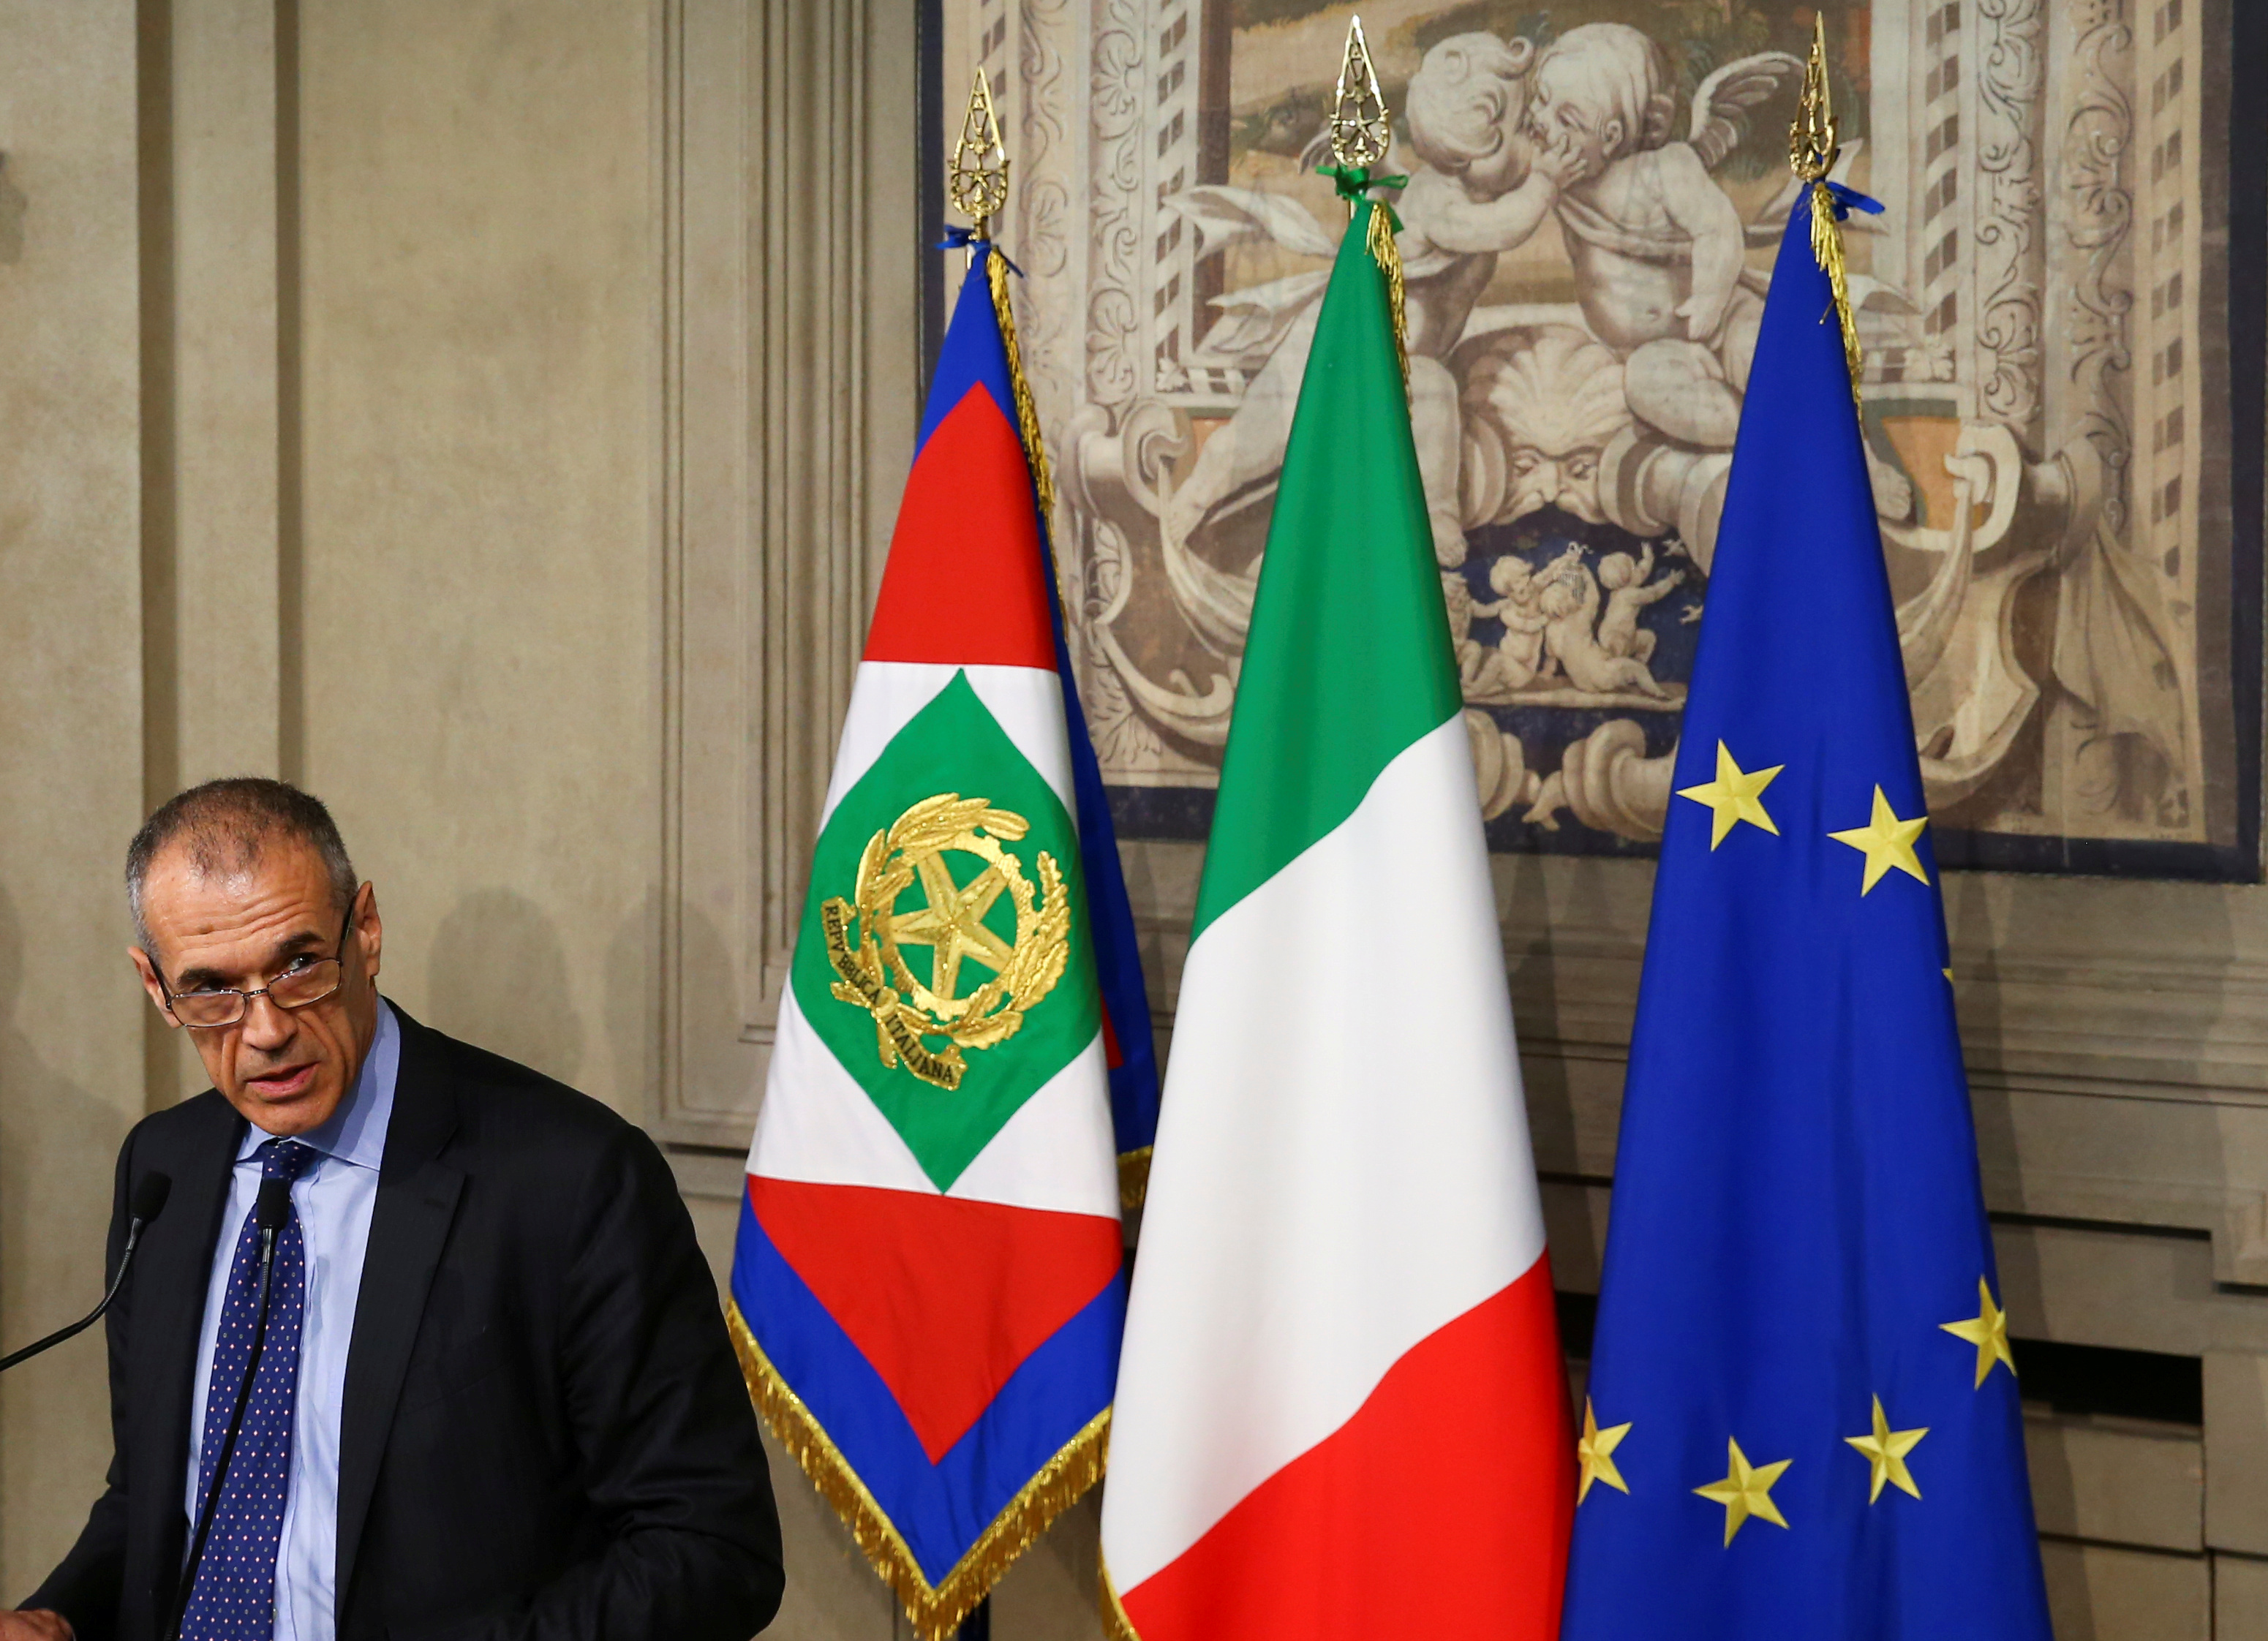 FILE - Former senior International Monetary Fund (IMF) official Carlo Cottarelli speaks to the media after a meeting with Italy's President Sergio Mattarella at the Quirinal Palace in Rome, Italy, May 28, 2018.